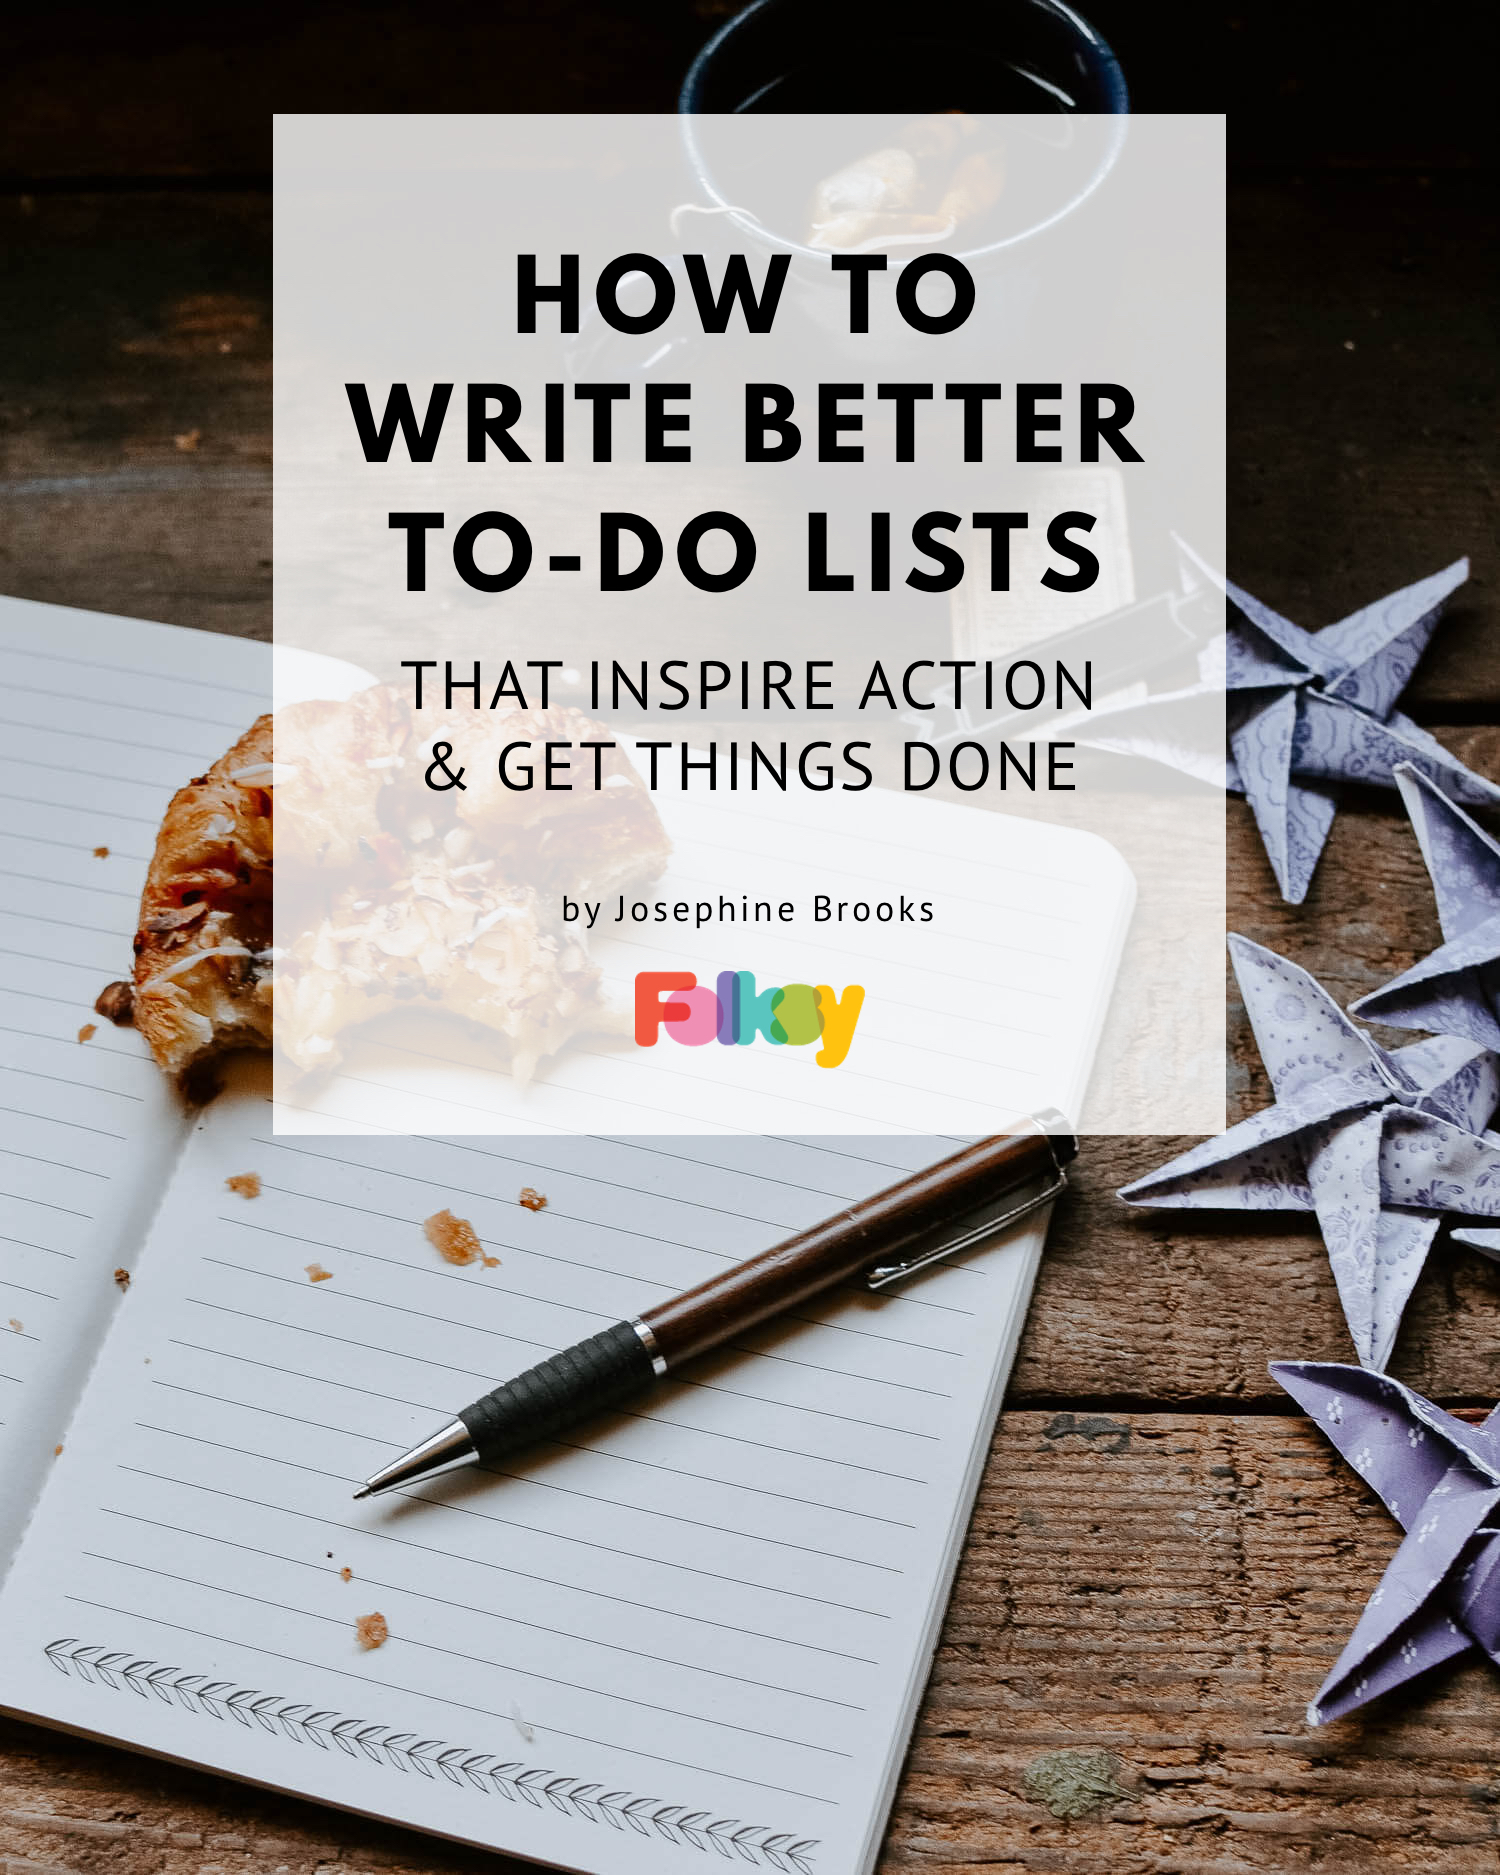 to do list, better to-do lists, how to write a good to-do list, to-do lists that work, to-do list advice, small business tips, to-do list tips, creative business tips, josephine brooks,